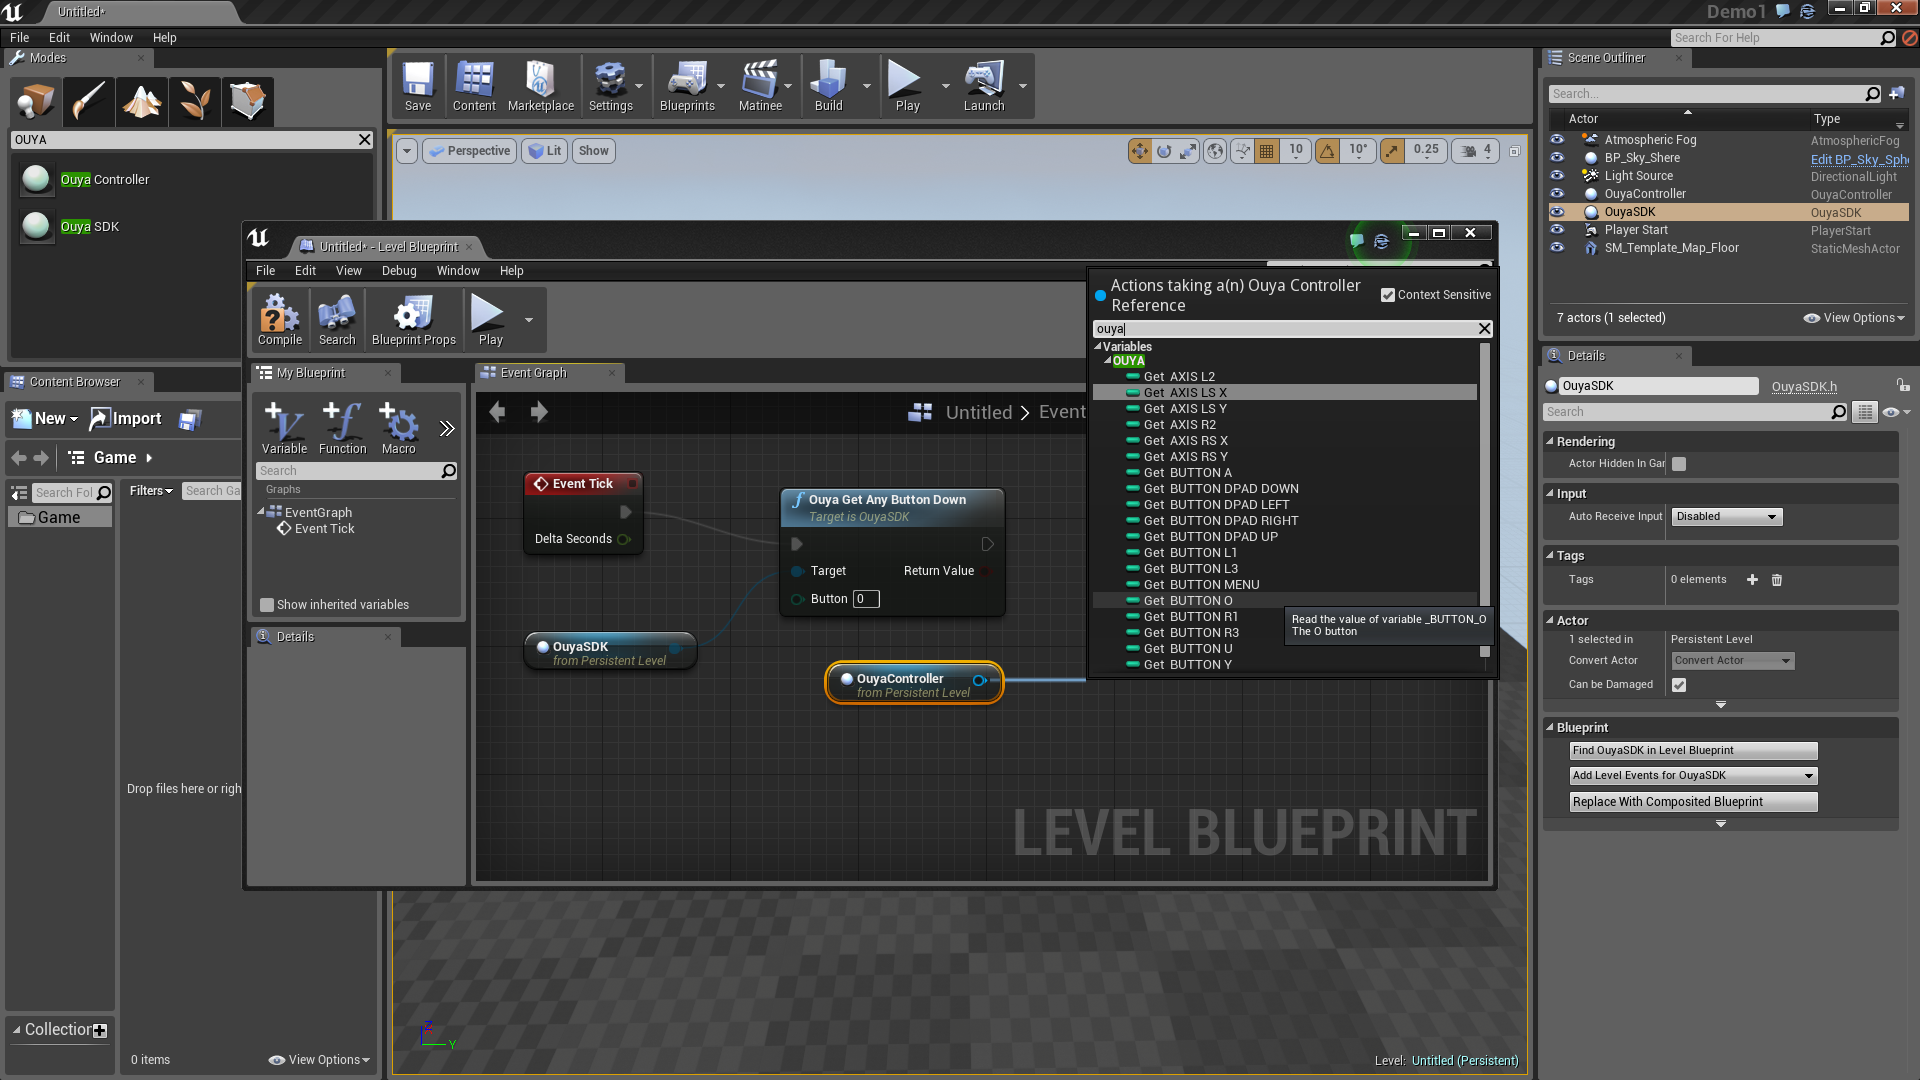 Docs razer developers right click on the event graph while the ouyasdk object in the scene outliner is selected to add ouya clear button states to the level blueprint malvernweather Gallery